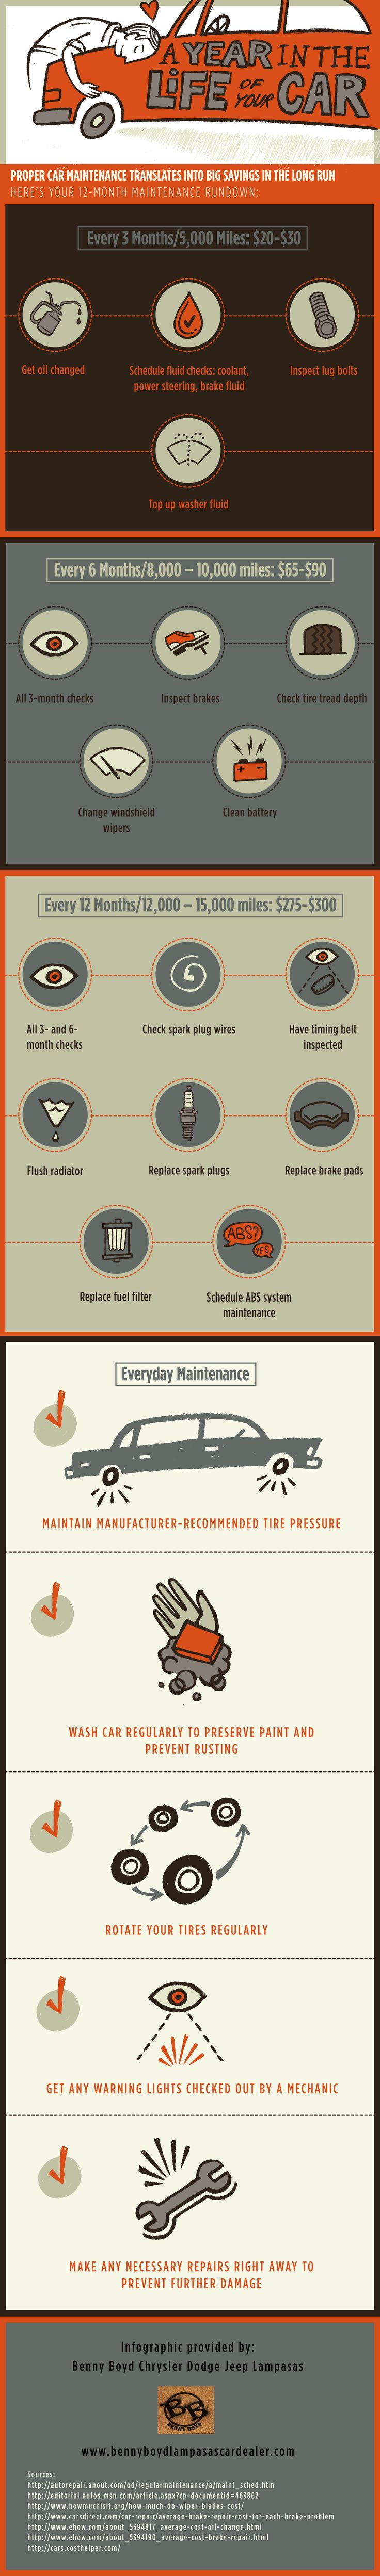 How often should you schedule fluid checks for your car? Every 3 months or 5,000 miles you should have the oil changed, inspect lug bolts, and check your car's fluids. Click on this infographic to learn more about car maintenance recommendations.